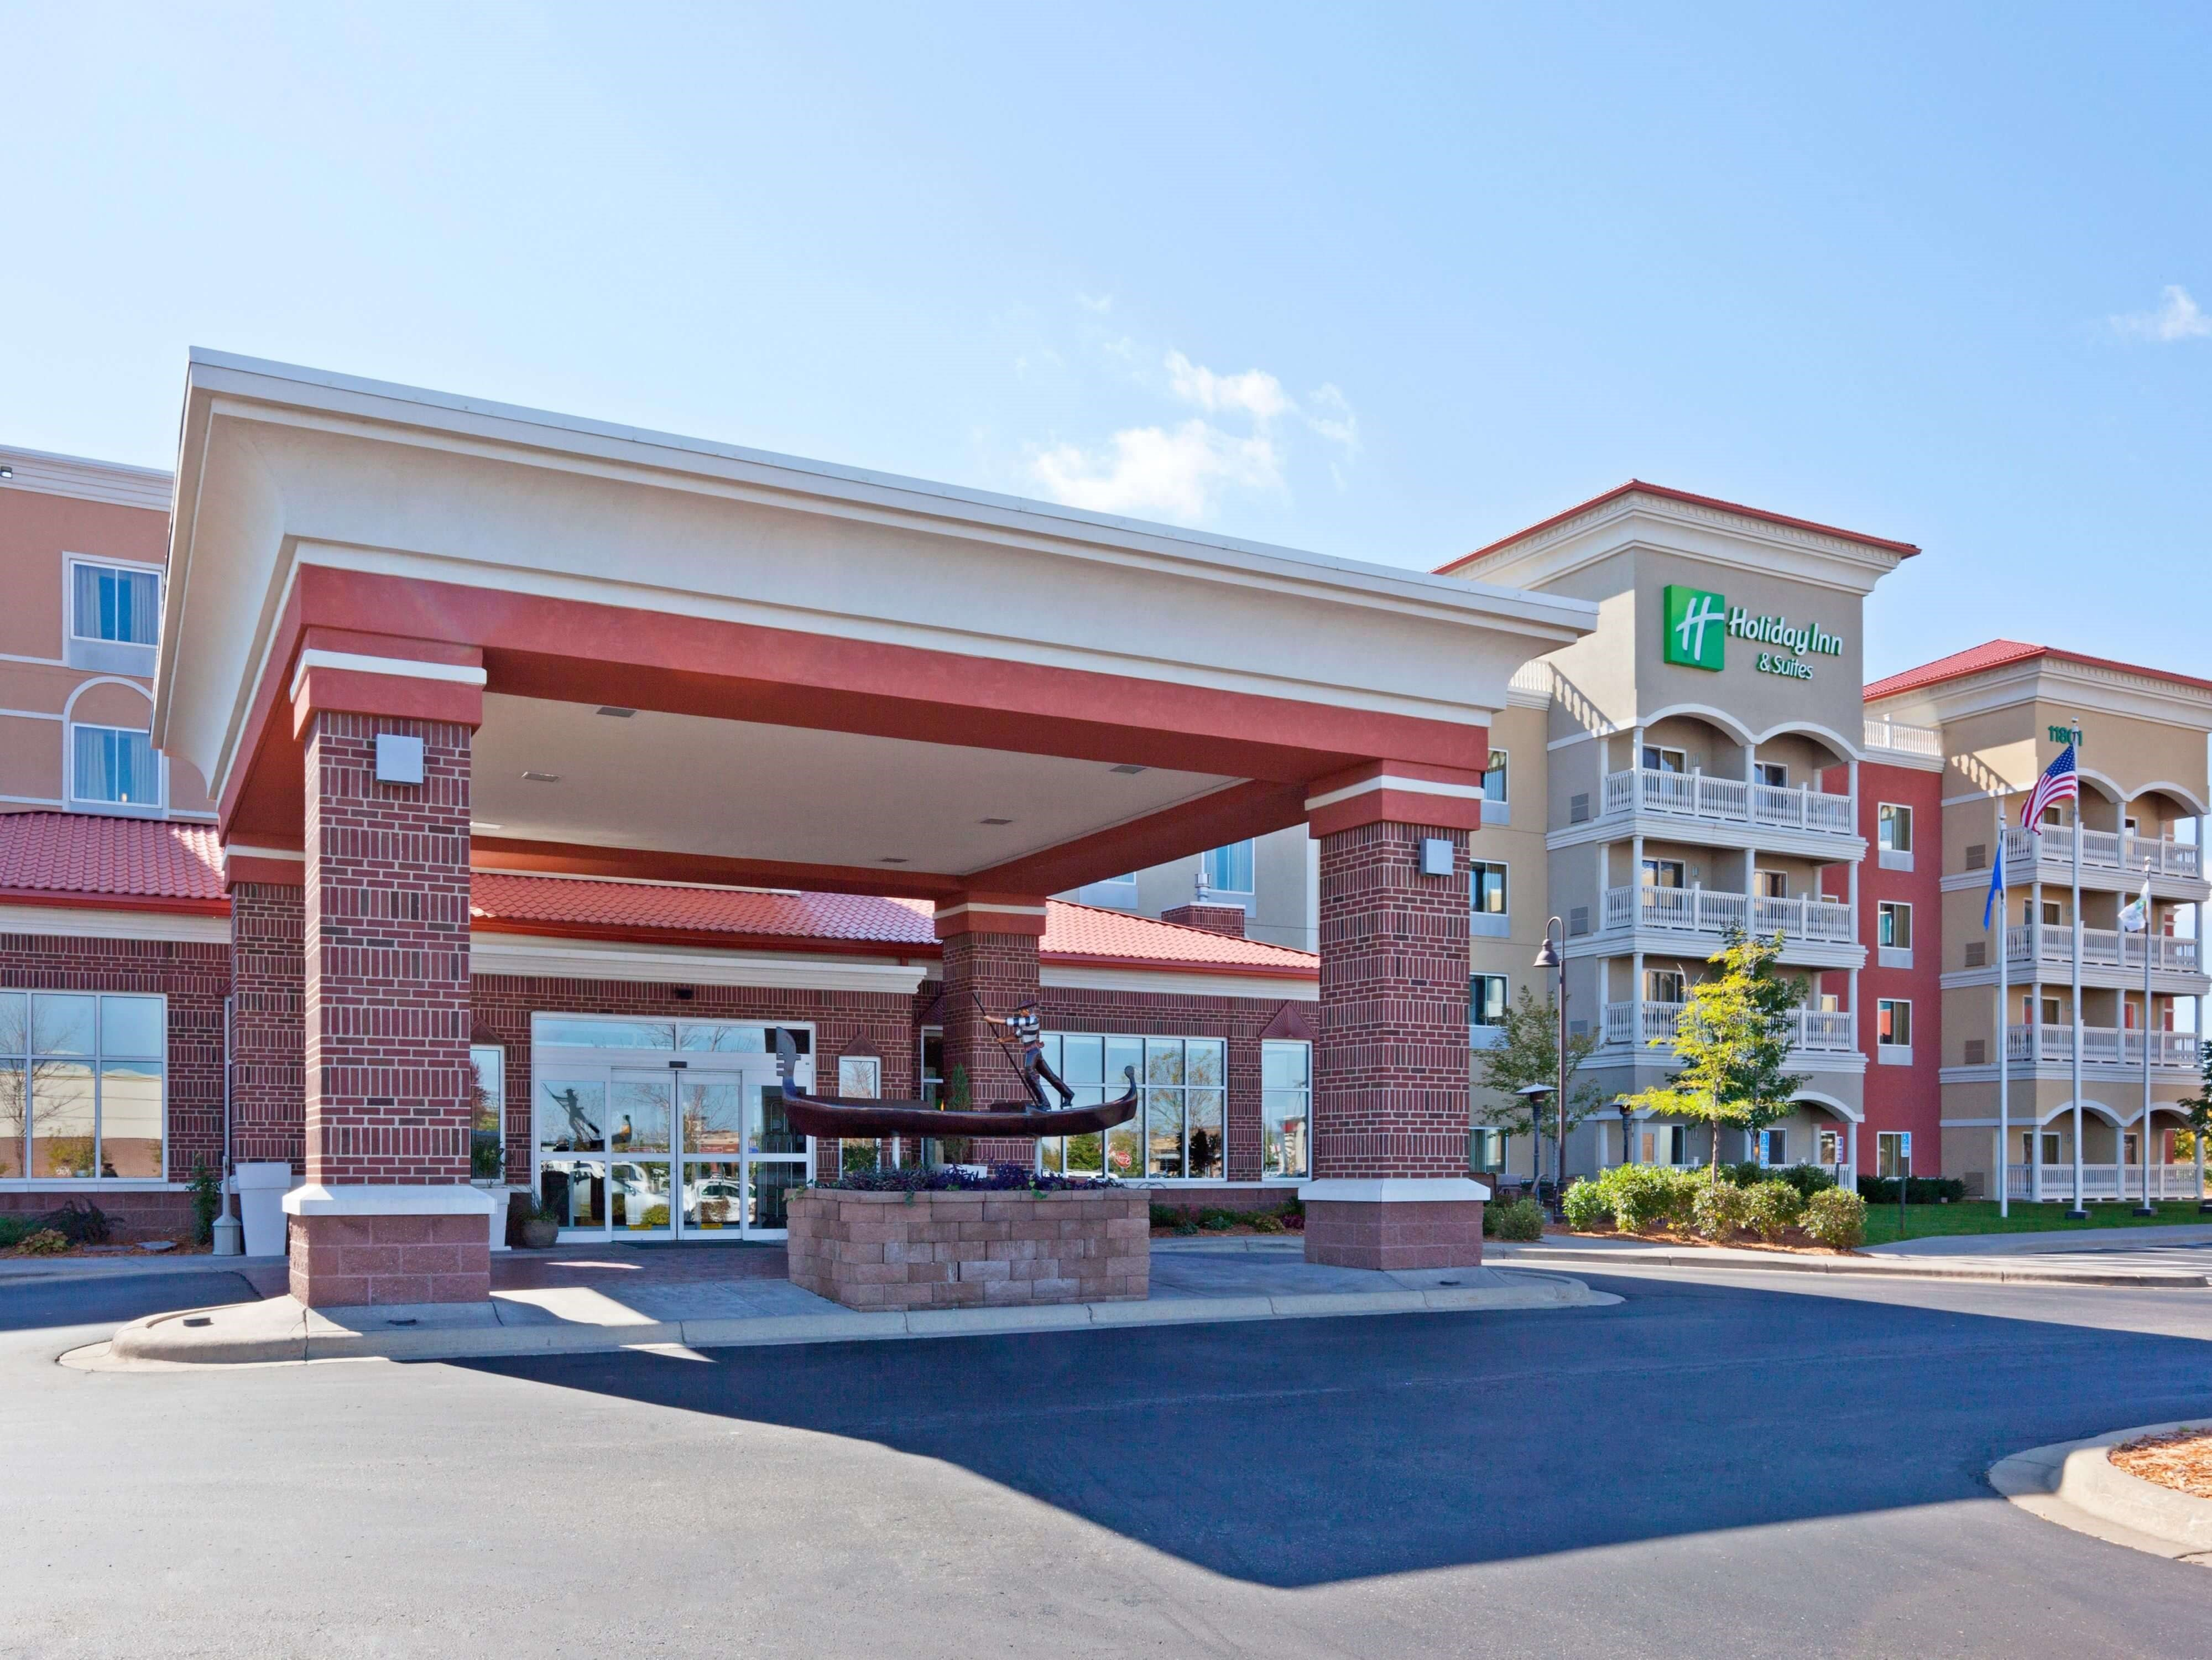 Image of Holiday Inn Maple Grove